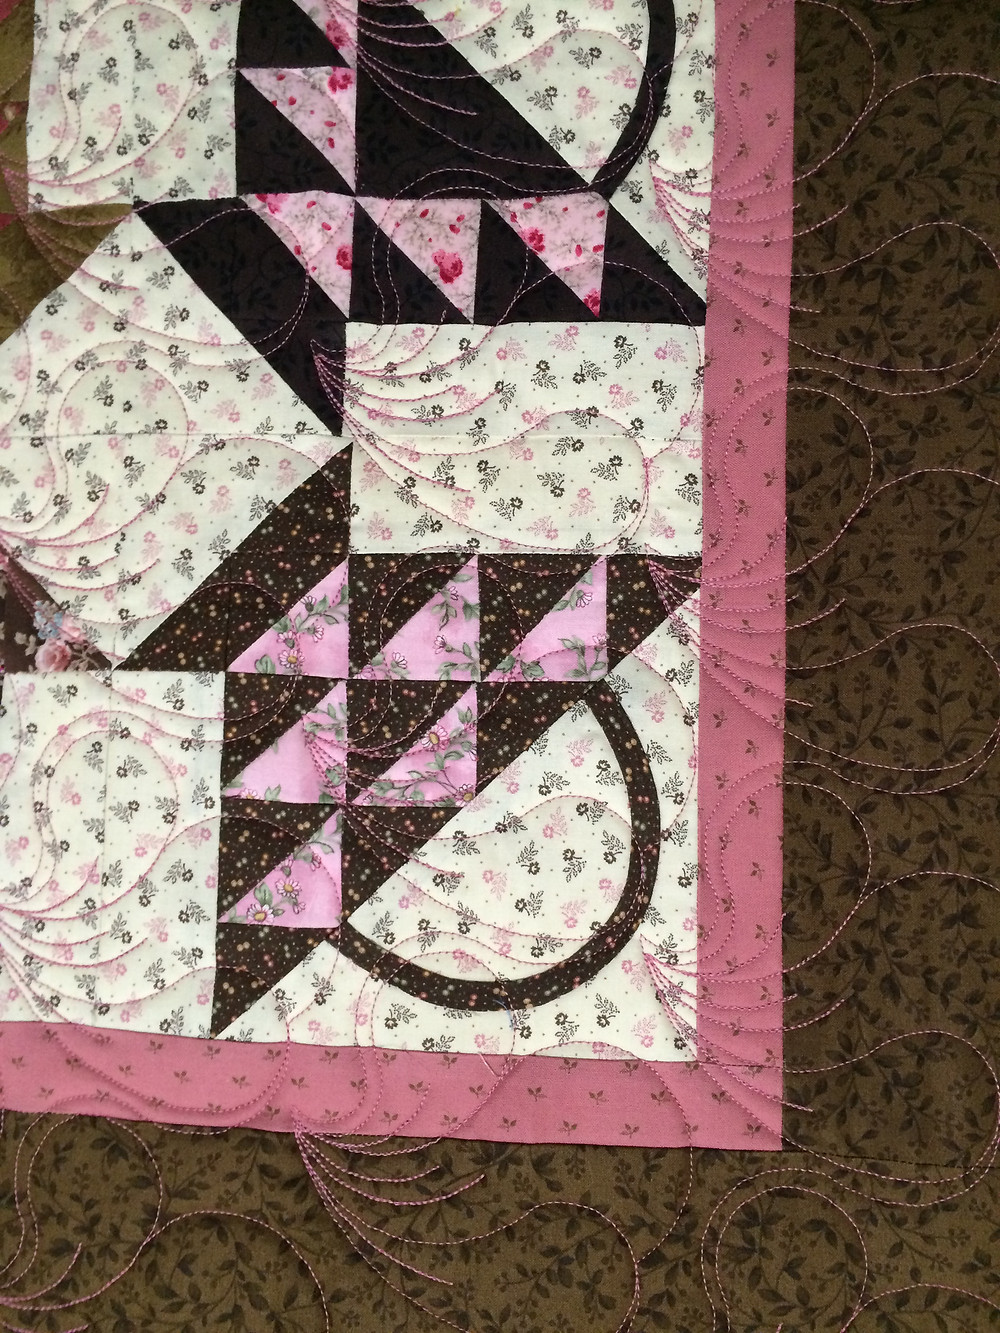 Feathers Quilting Pattern on Baskets Quilt by Trish Wells